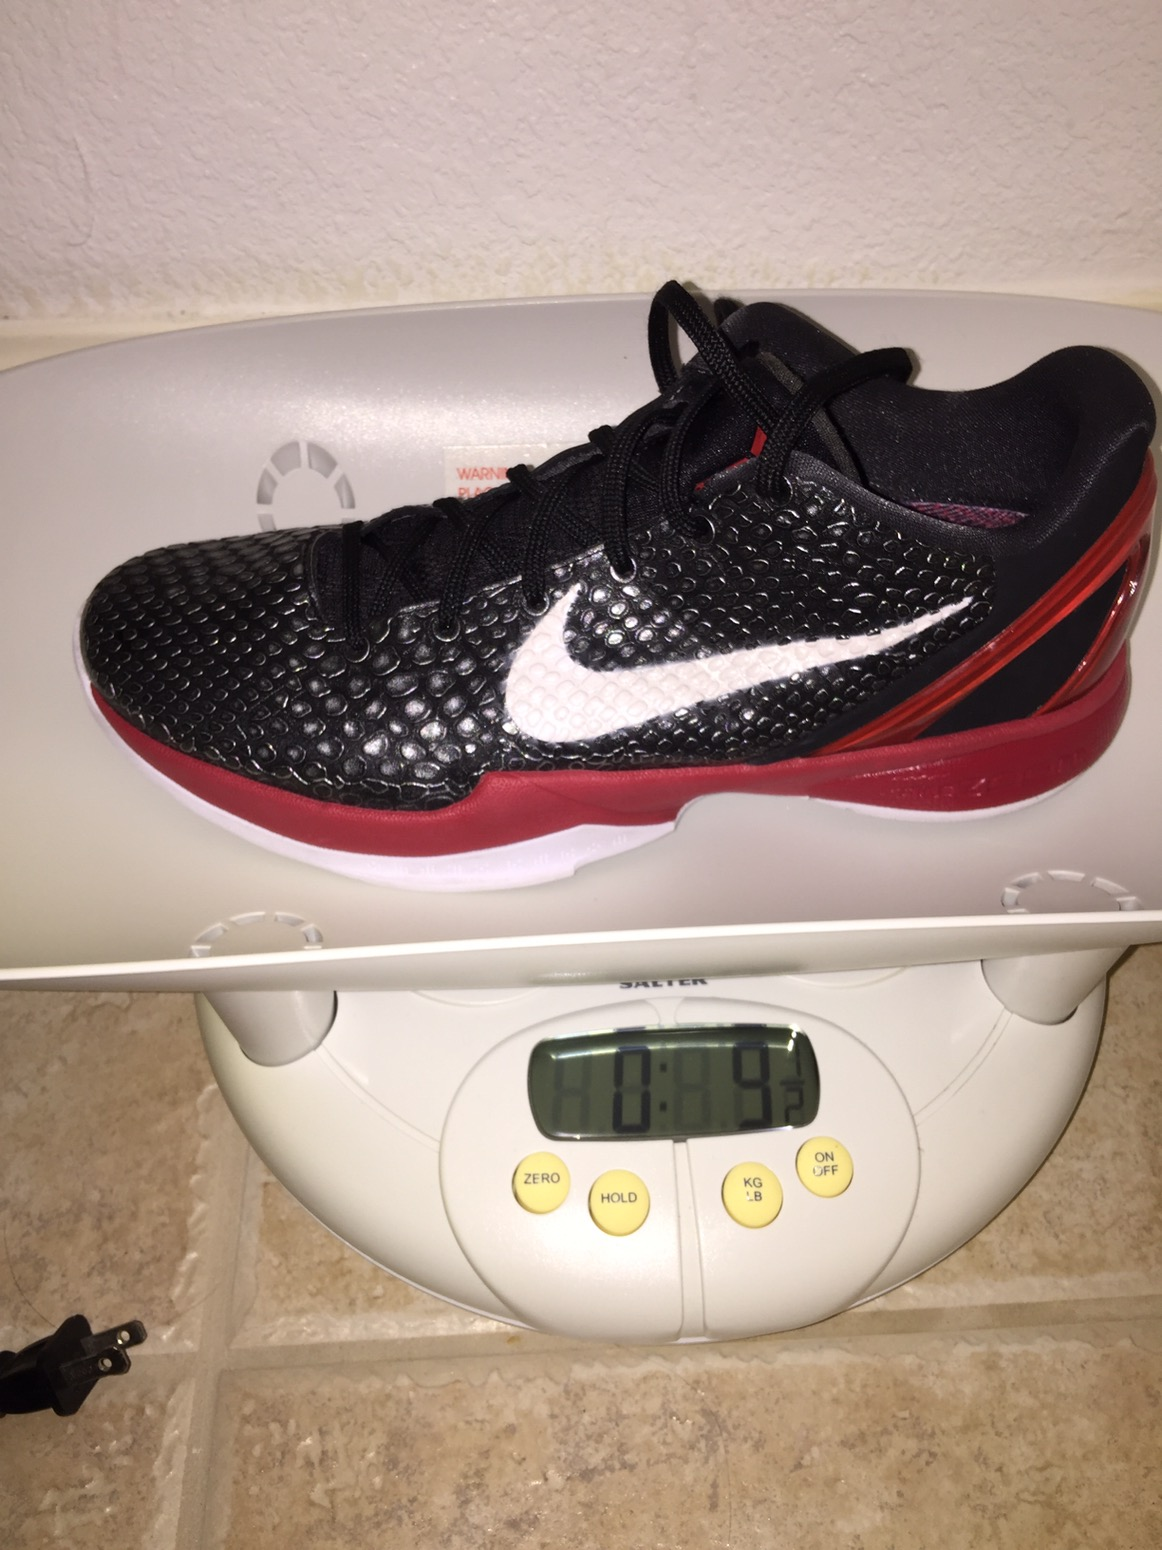 on sale 65a26 9f04a The Archive  Nike Zoom Kobe VI Performance Review and Analysis